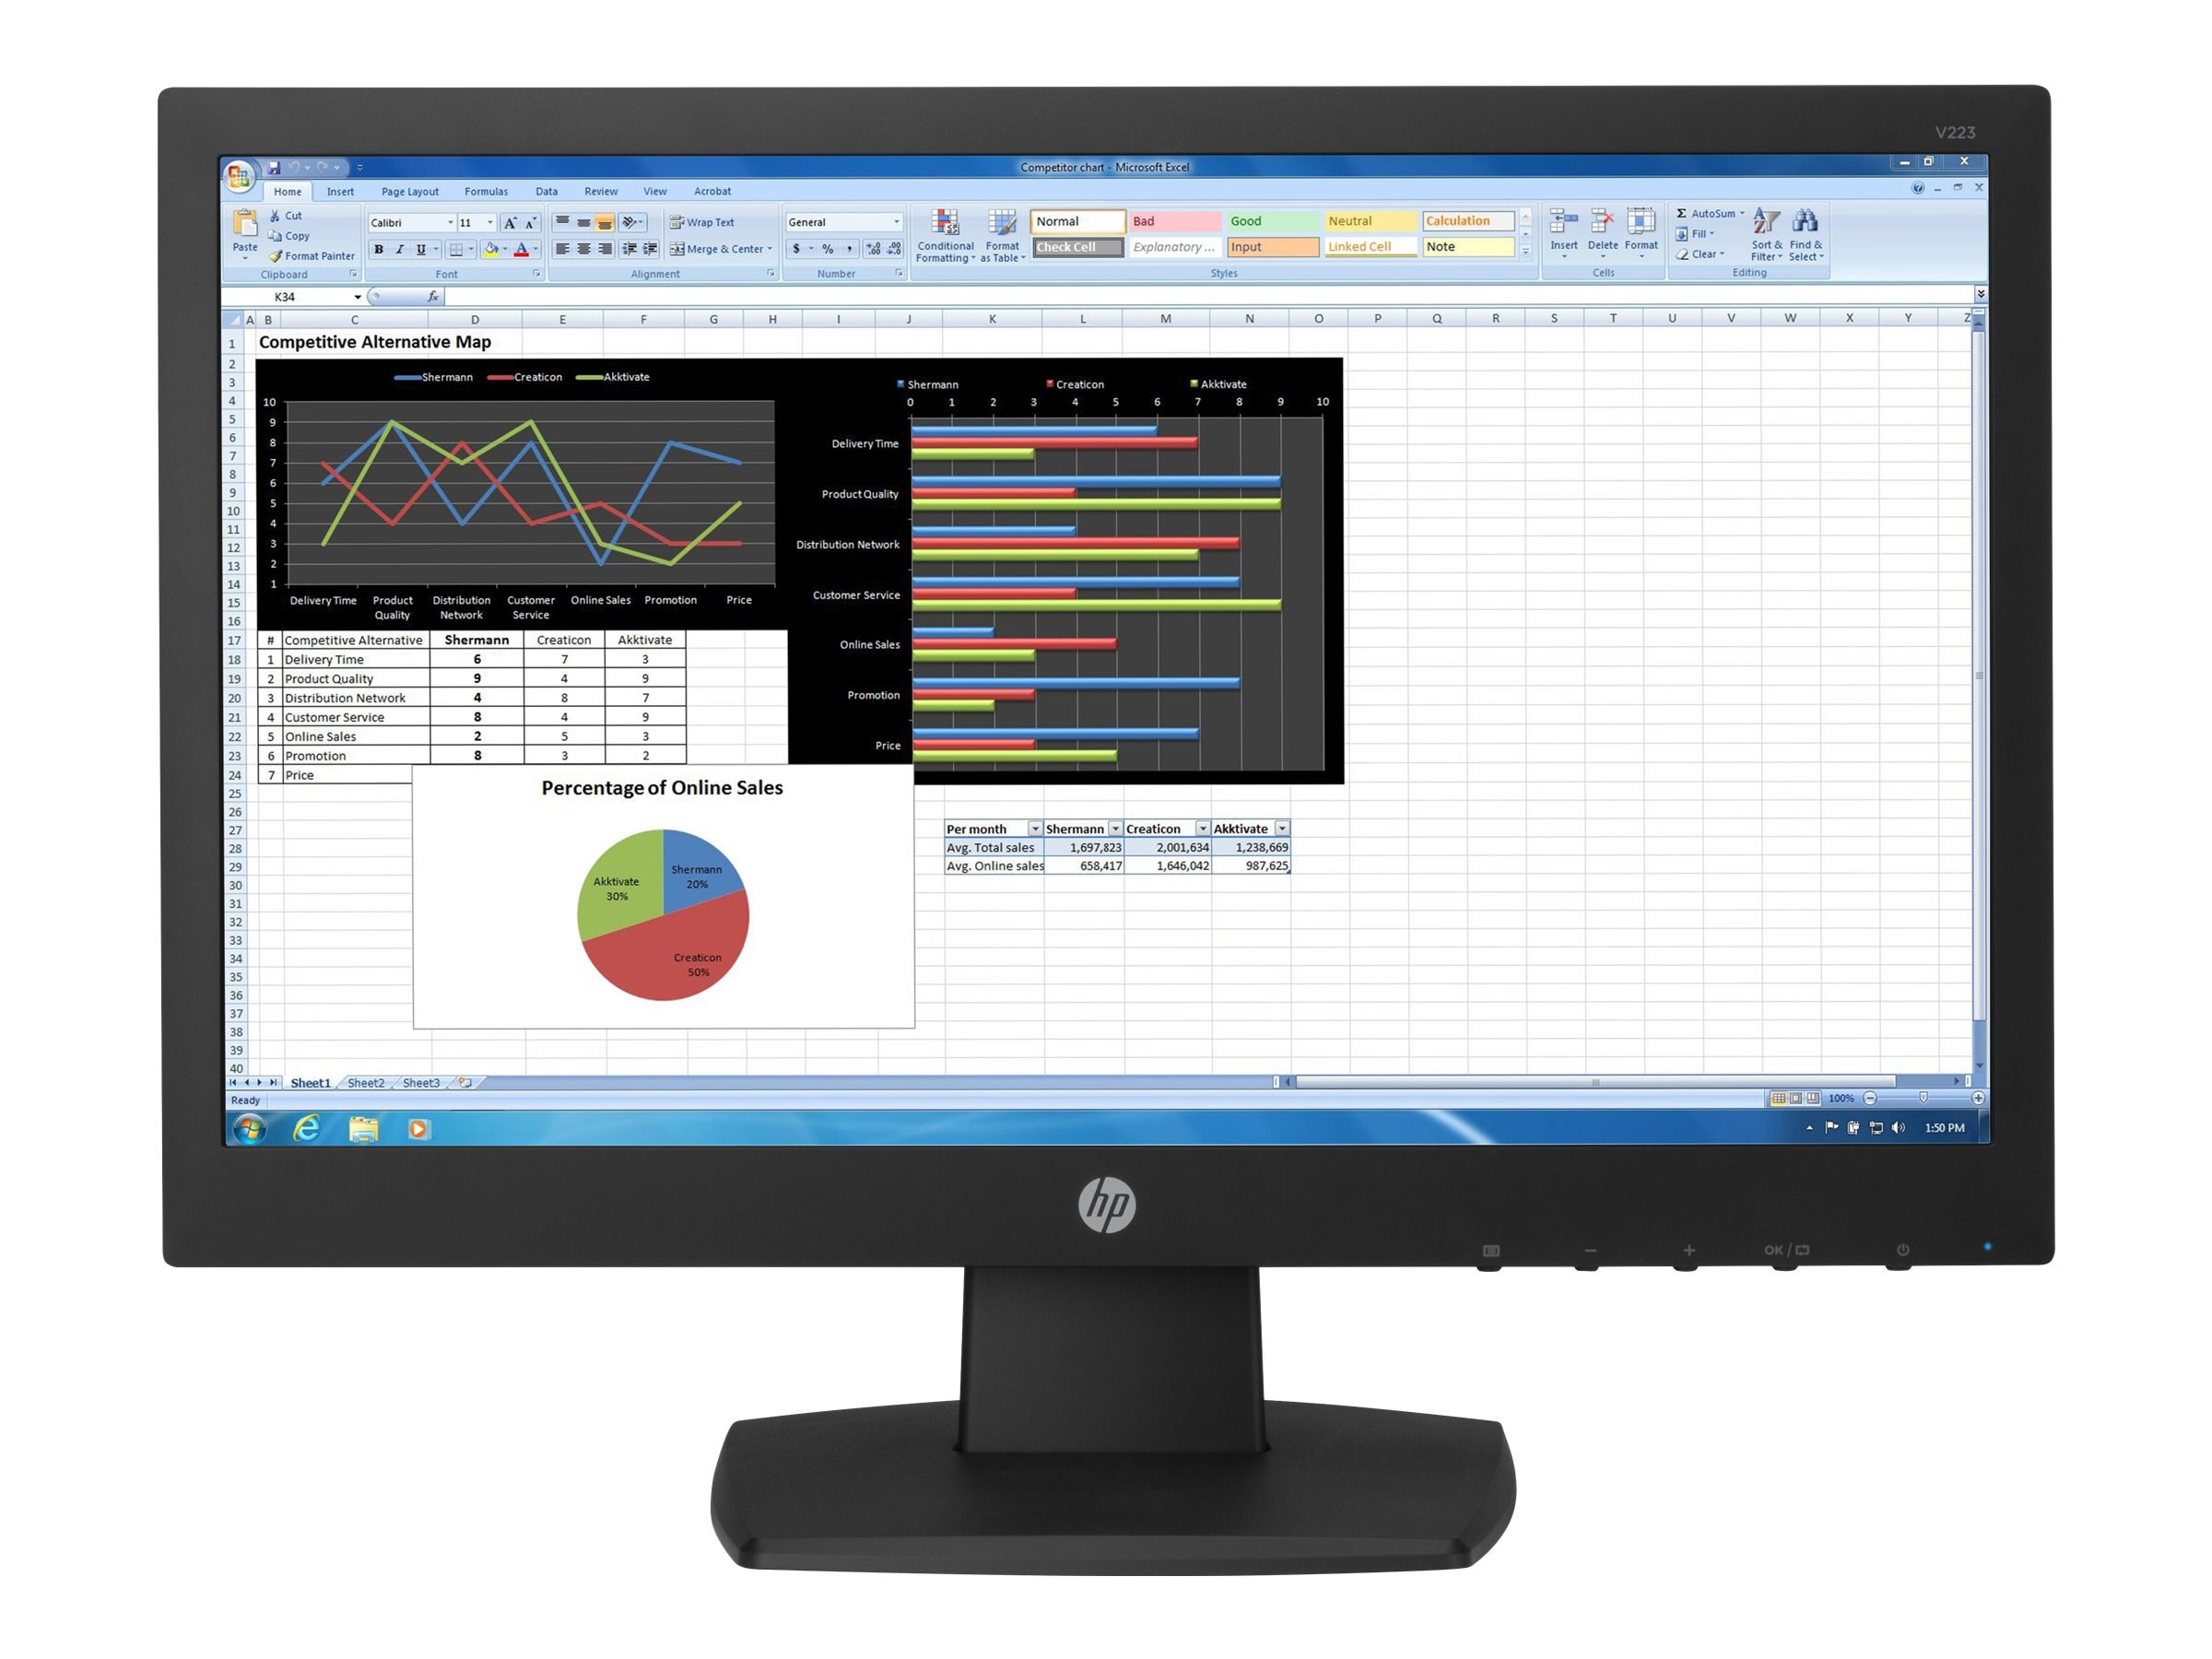 HP 21.5 V223 Full HD LED-LCD Monitor, Black, V5G70A6#ABA, 31507058, Monitors - LED-LCD